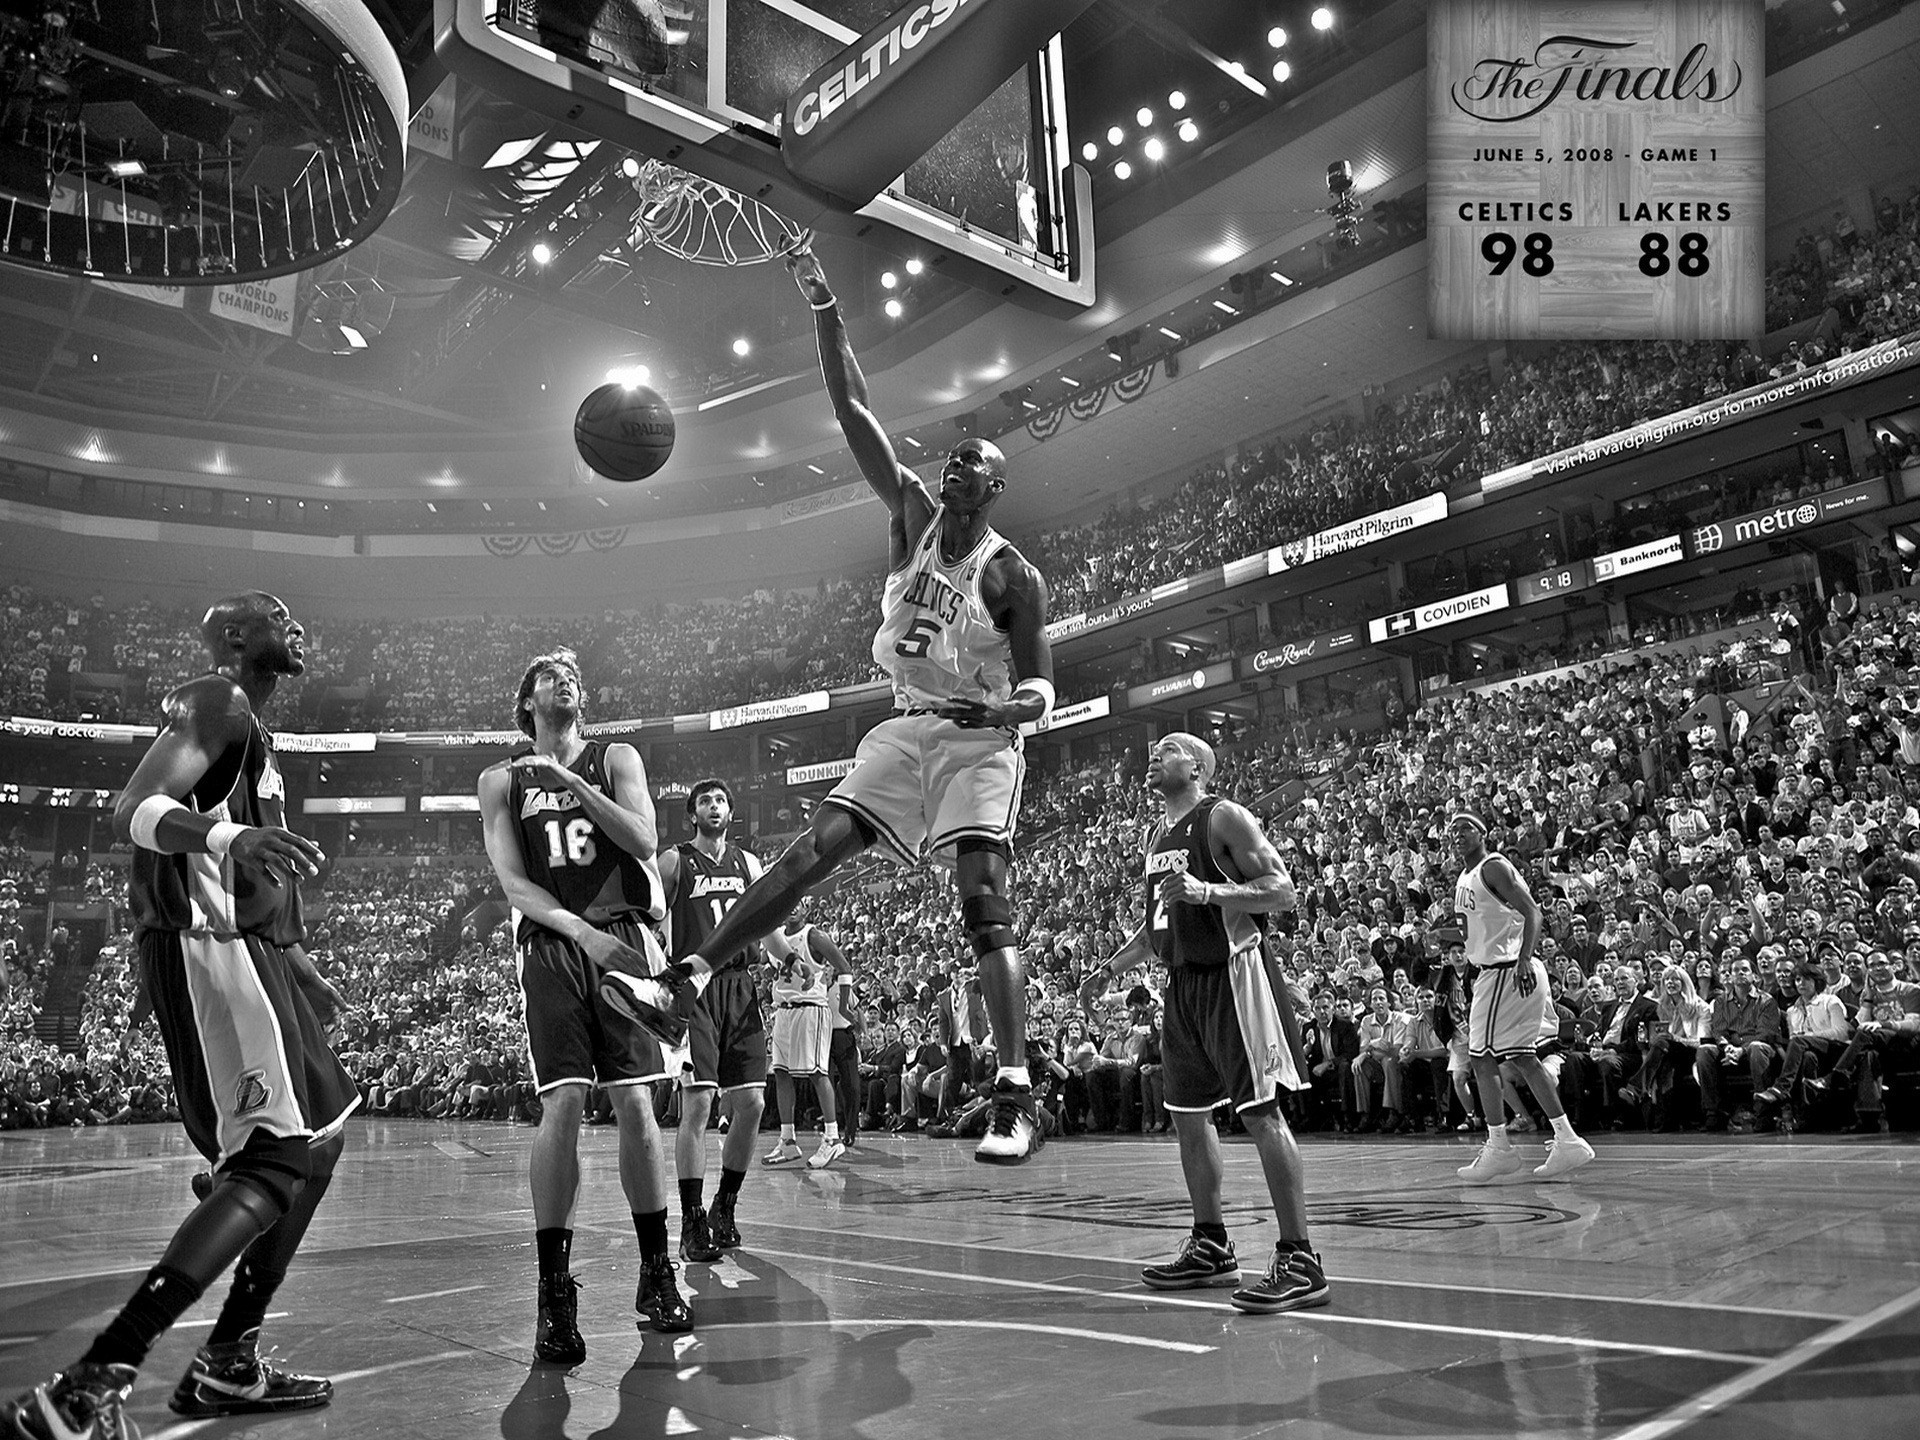 Res: 1920x1440, Boston celtics los angeles lakers nba basketball monochrome wallpaper